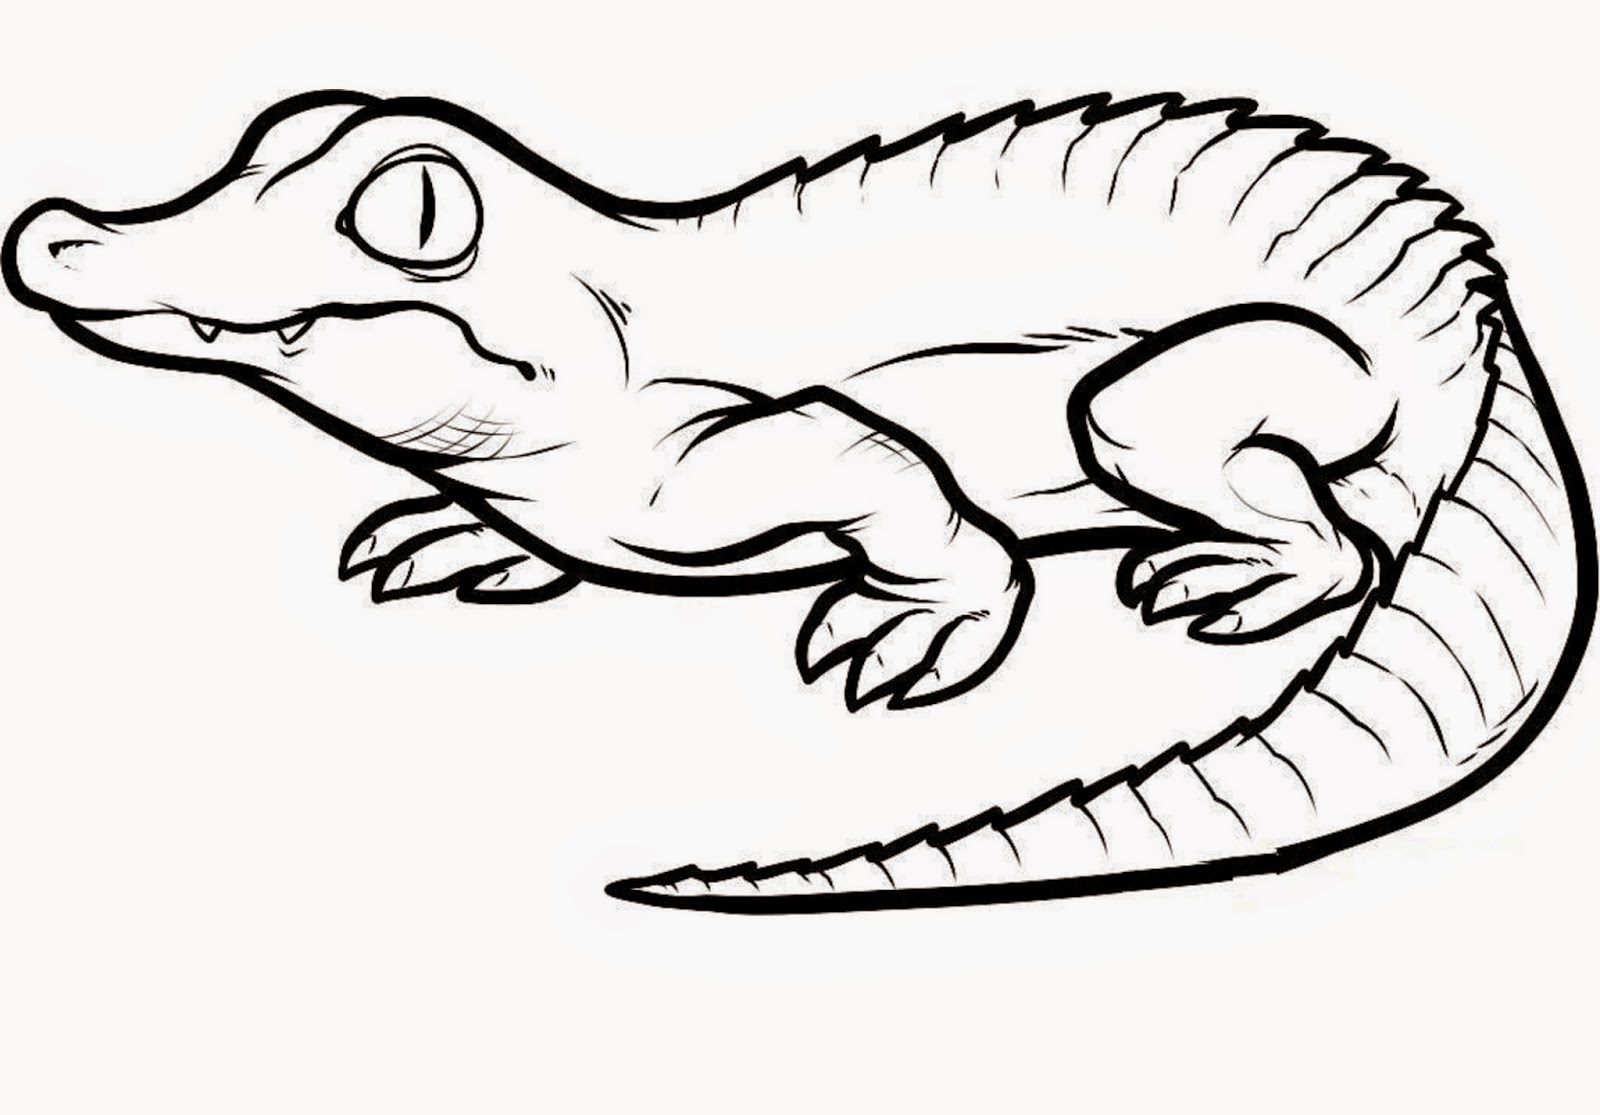 graphic royalty free stock reptiles drawing alien #139733317